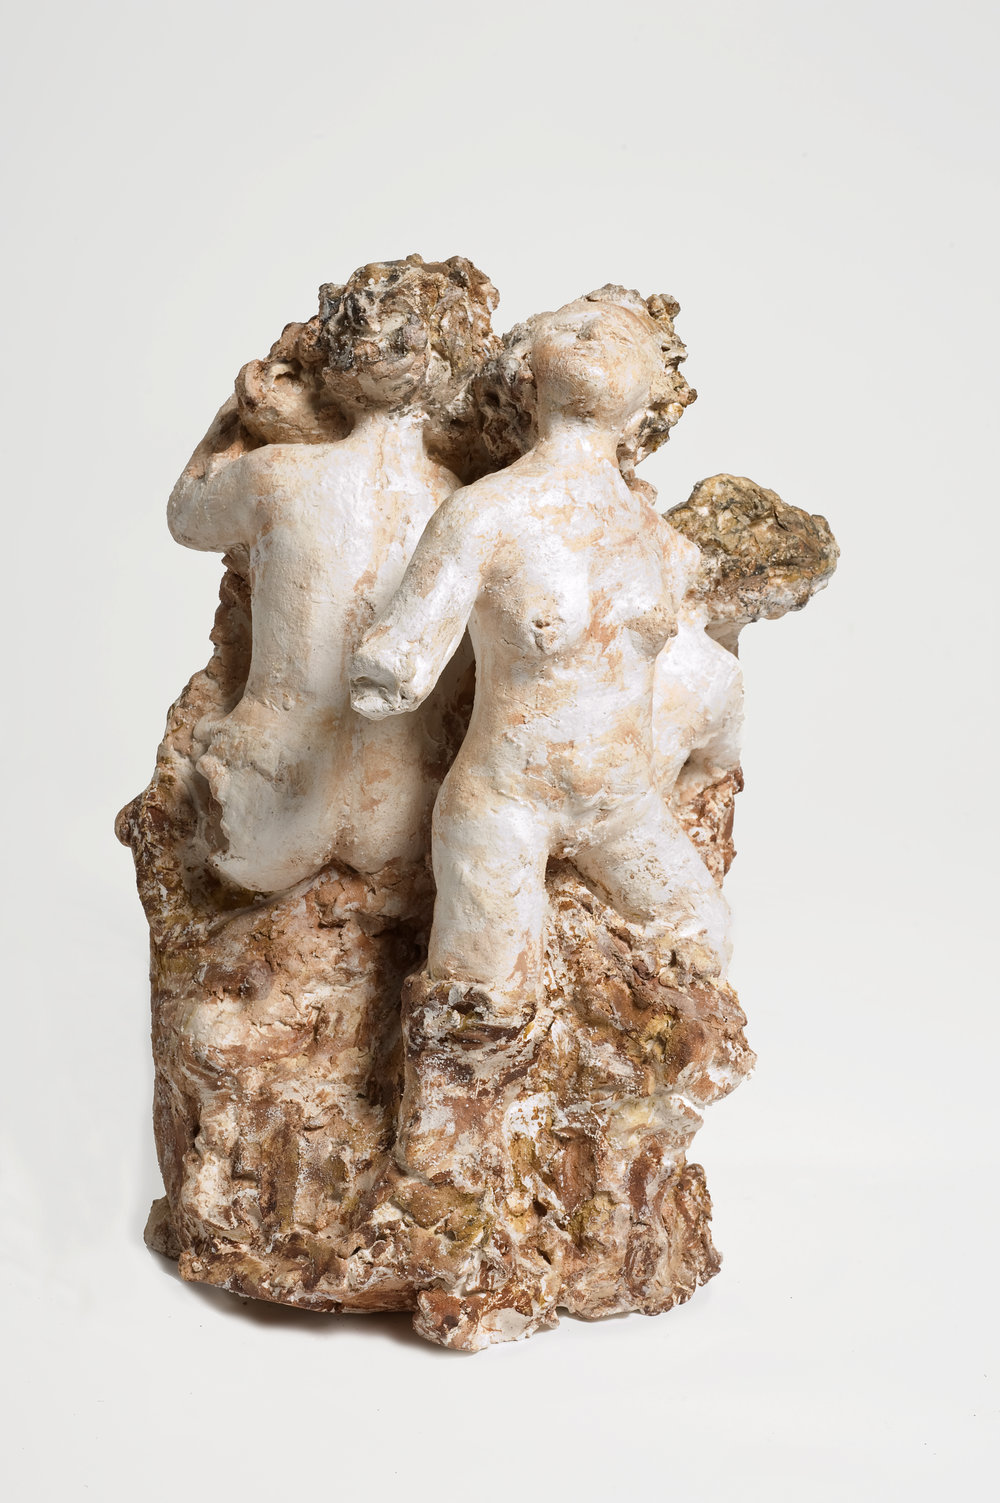 NAOMI ELLER  The Three Fates I  2012 Ceramic, oil paint, shellac and wax 29 x 26 x 18 cm